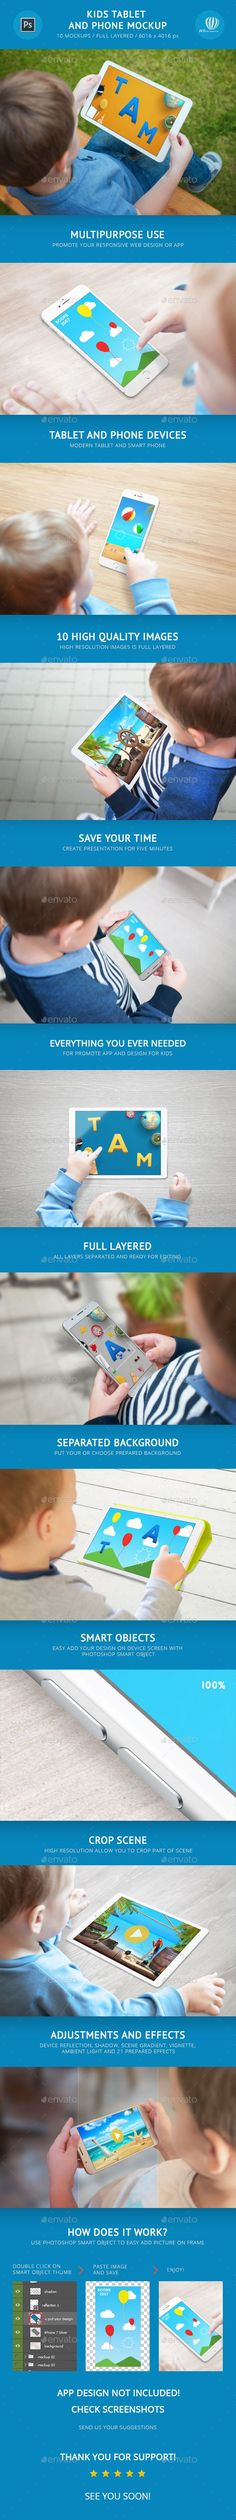 Kids Tablet and Phone Mockup — Photoshop PSD #smartphone #mock-up • Available here → https://graphicriver.net/item/kids-tablet-and-phone-mockup/20618695?ref=pxcr